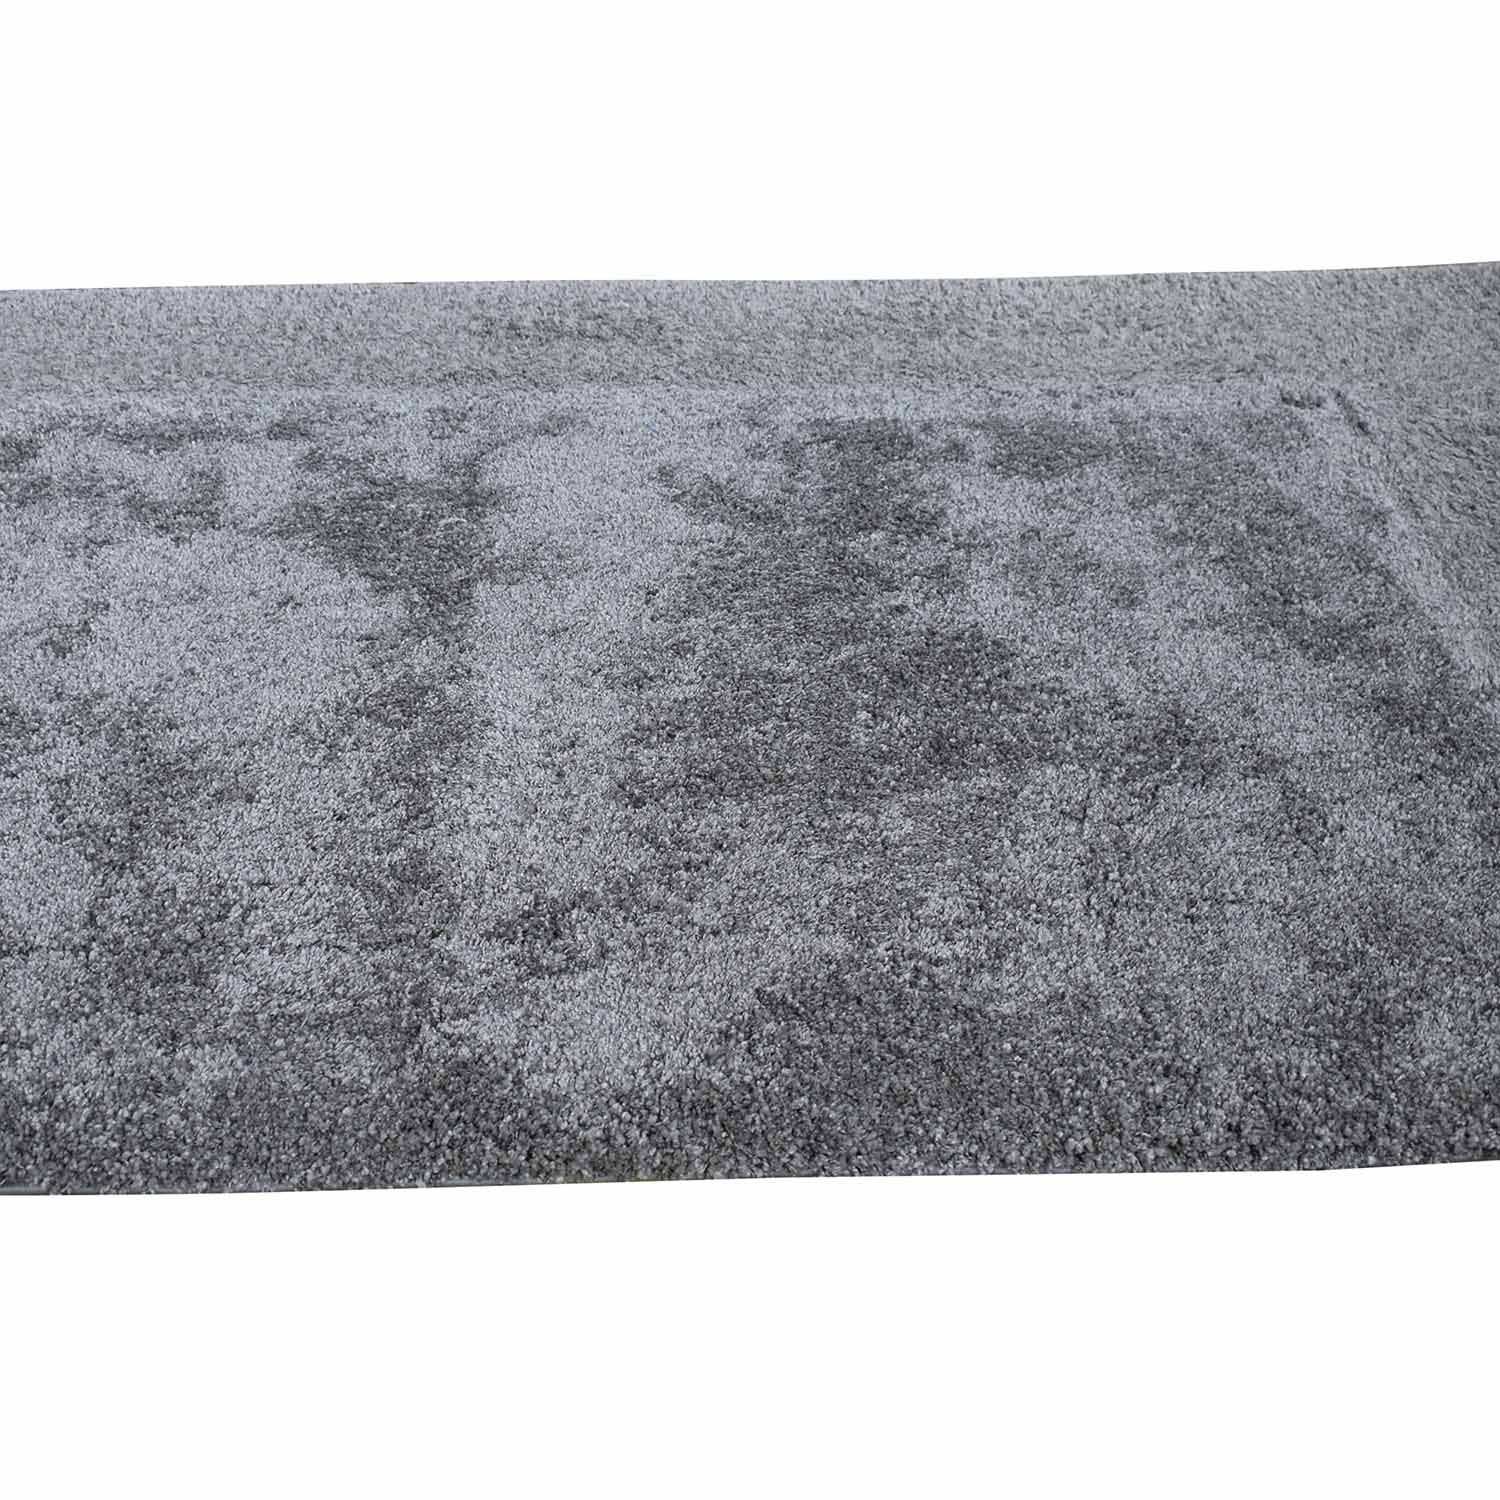 ABC Carpet & Home ABC Carpet & Home Grey Shag